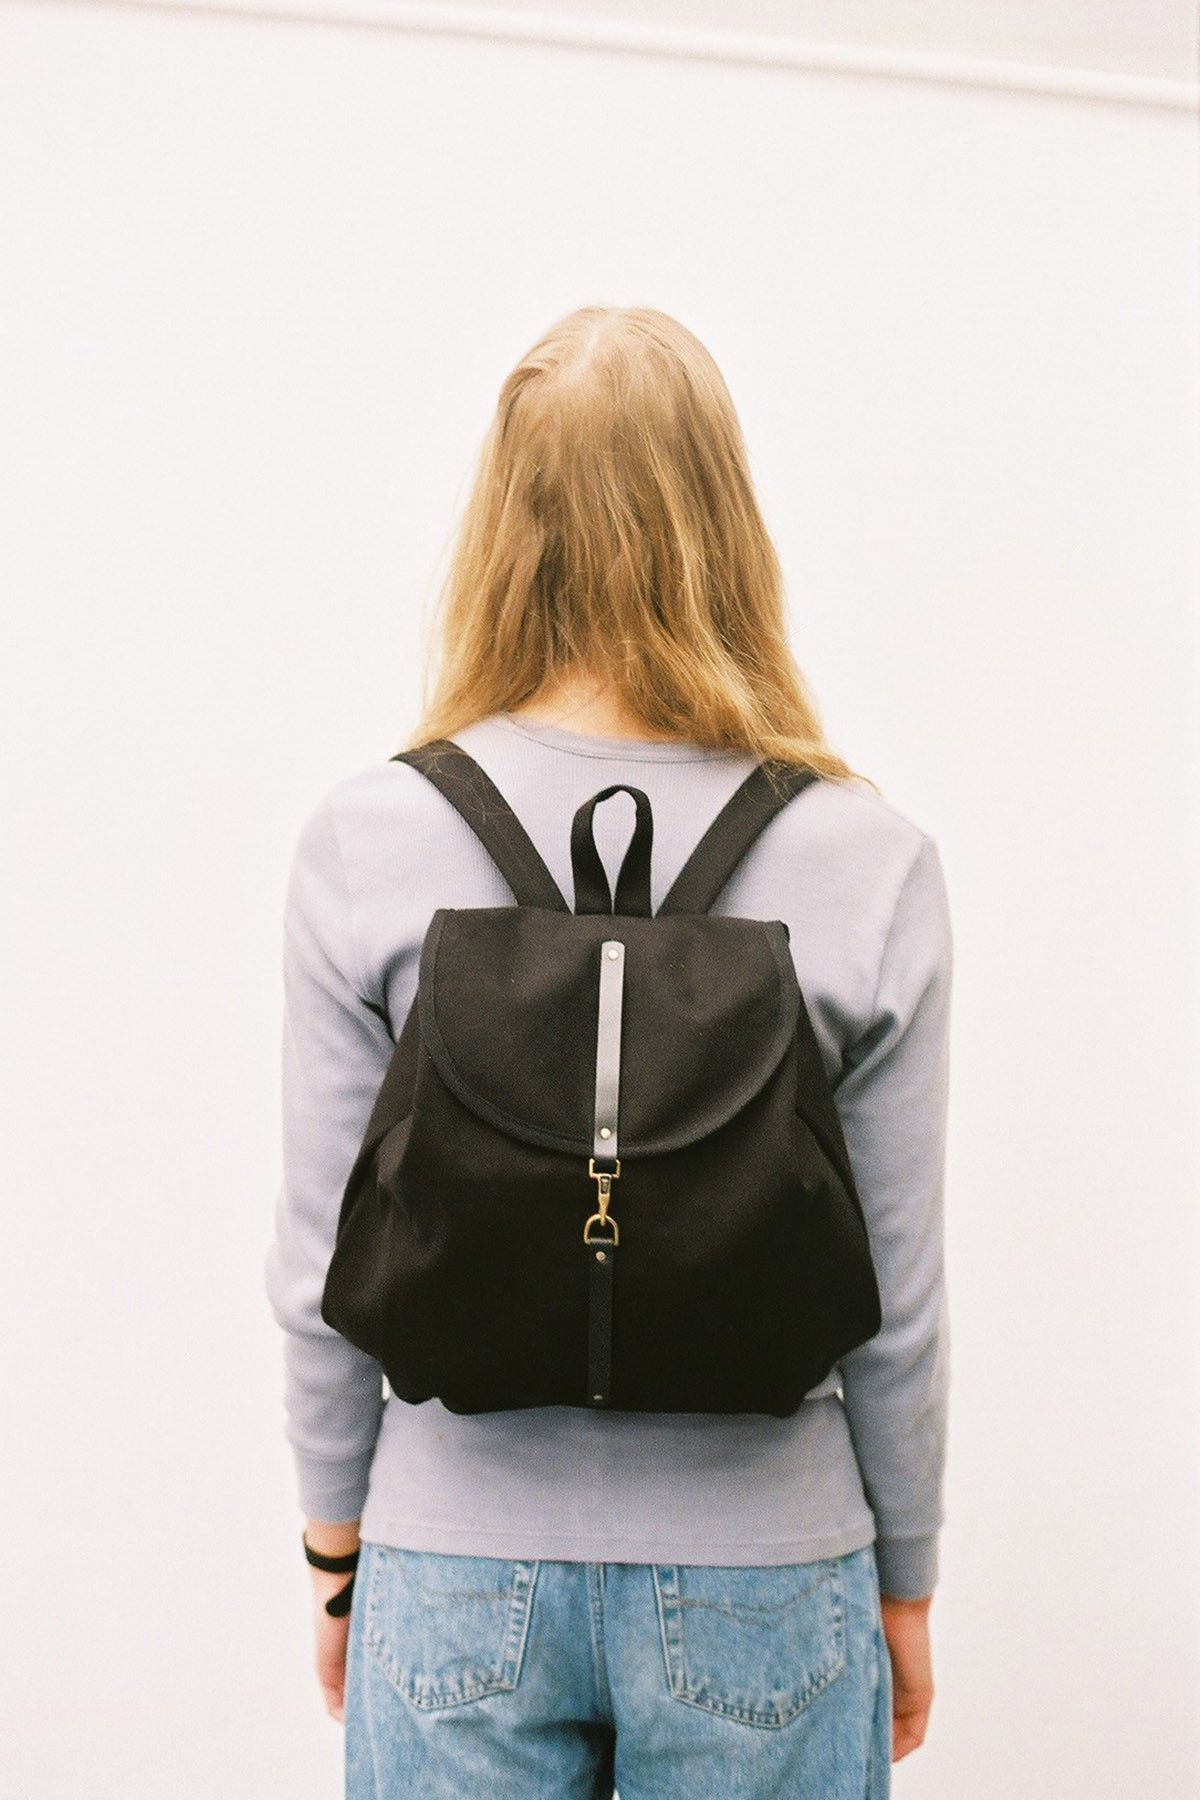 SALE: up to 50% off. Classic Backpack Black - €89